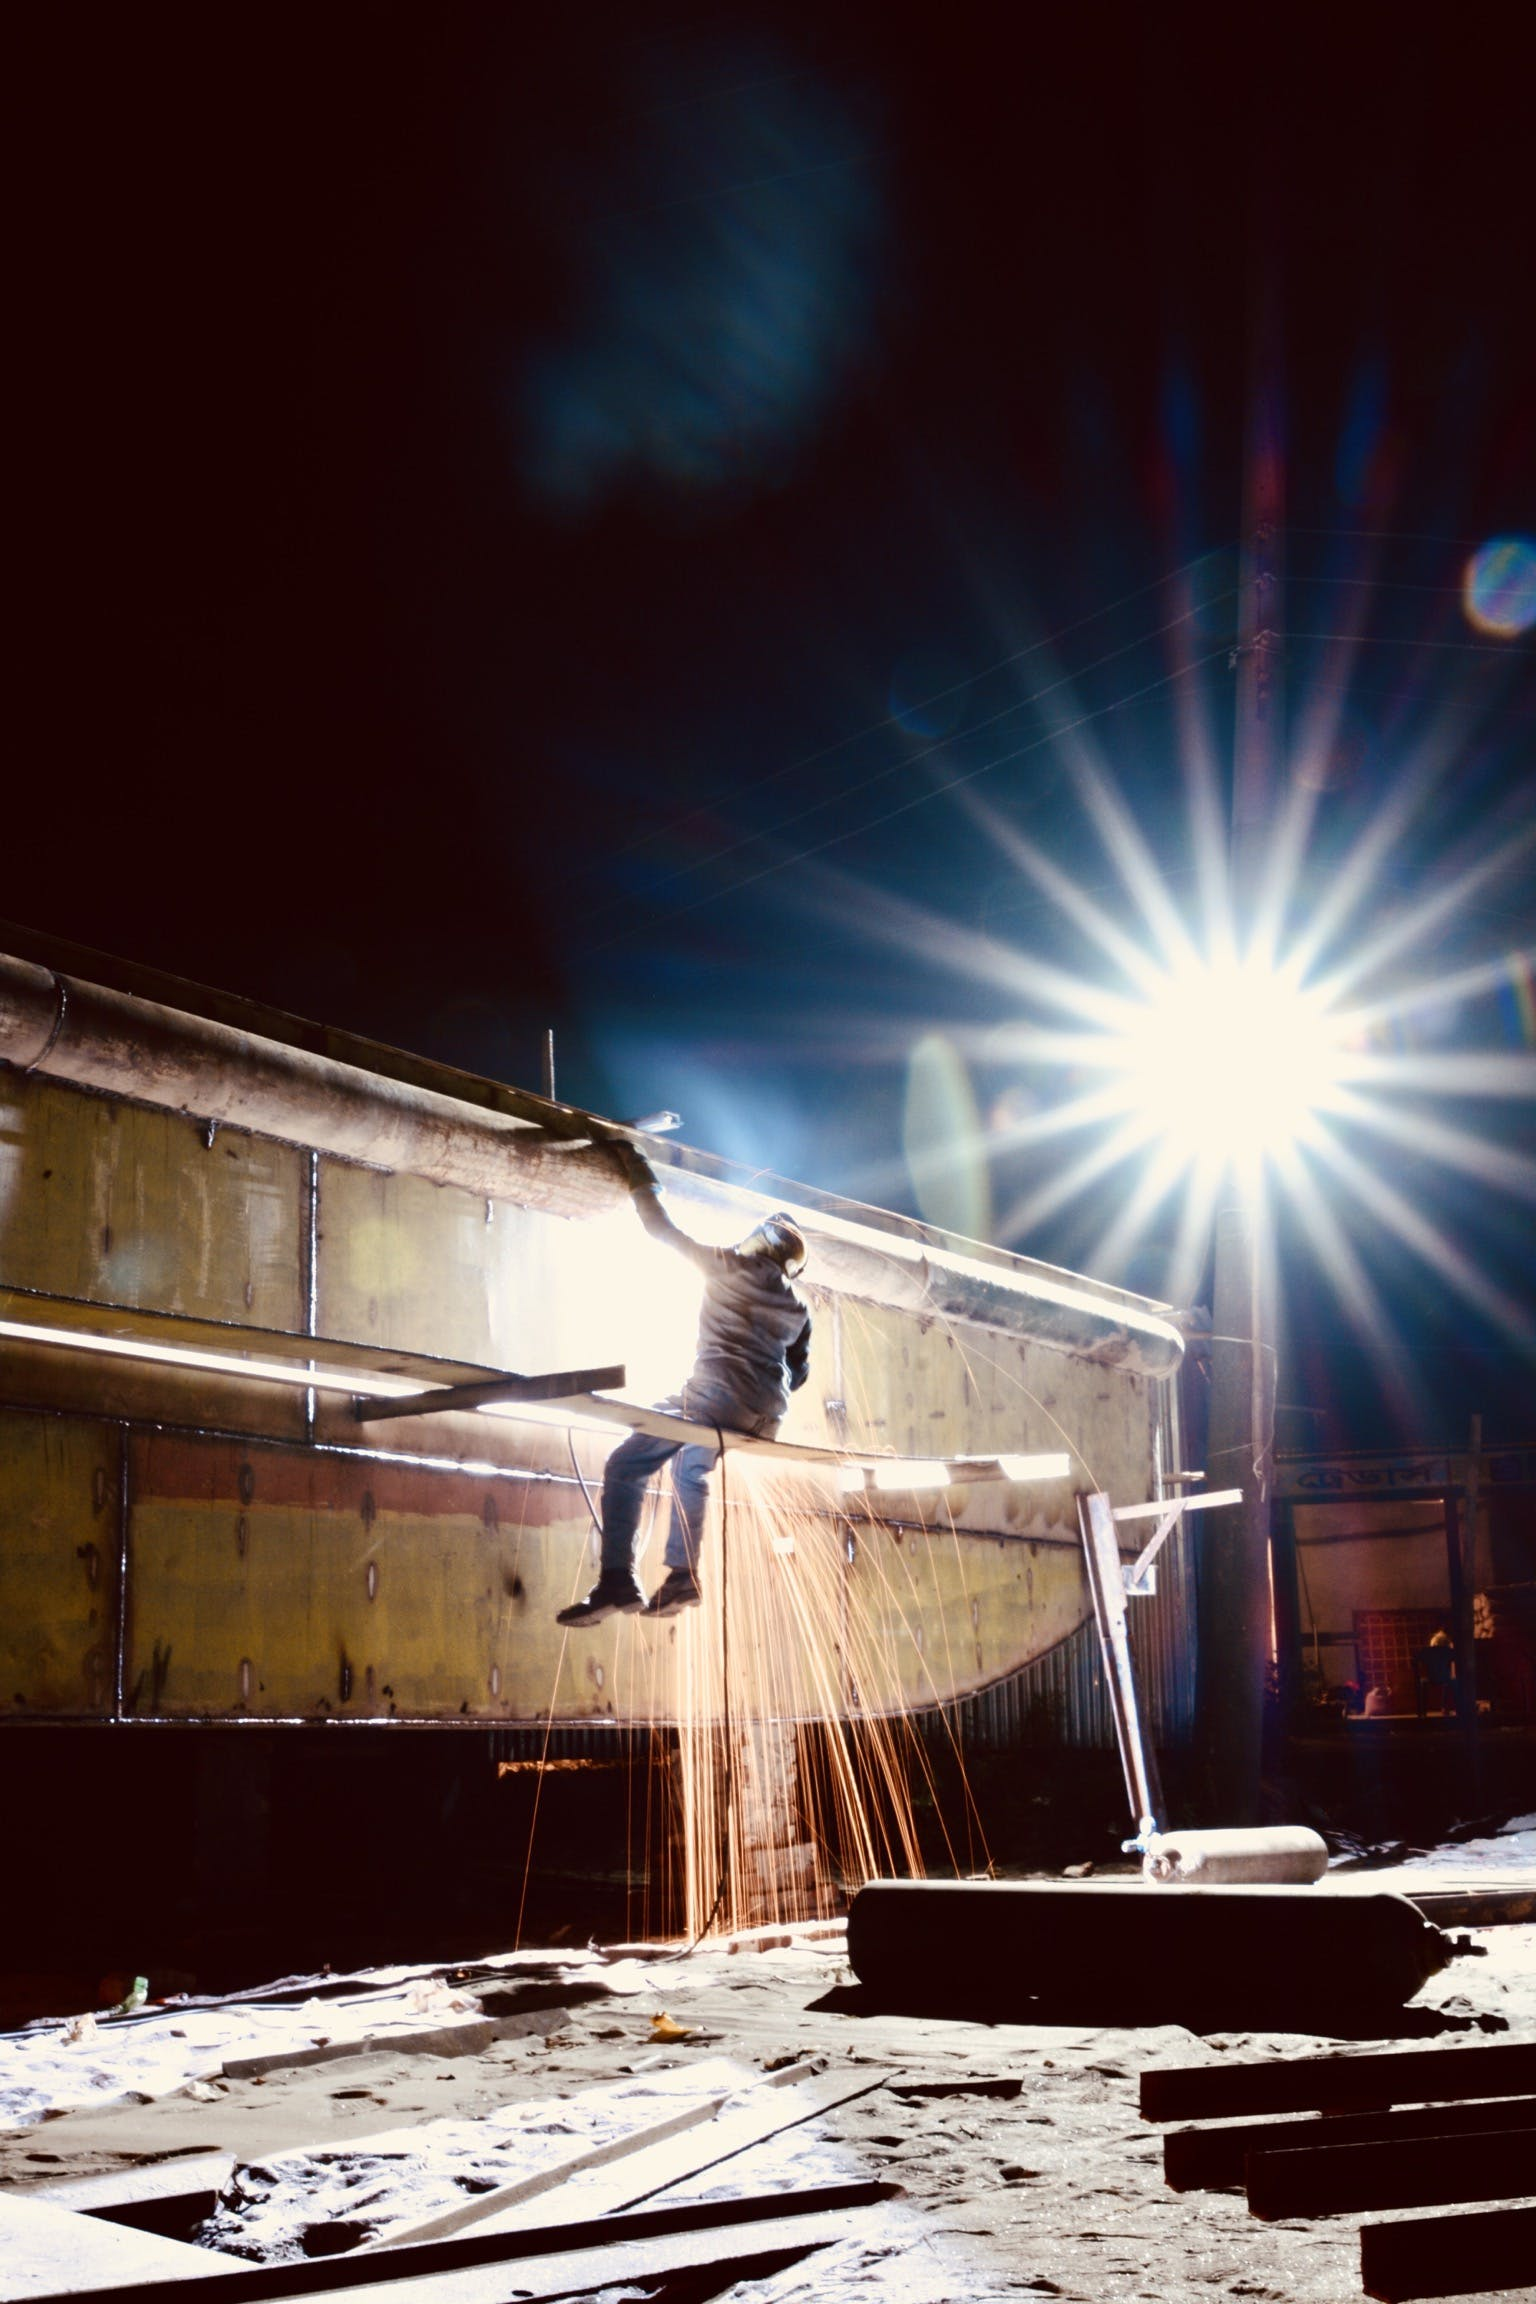 Free stock photo of night life, night lights, exposure, construction workers